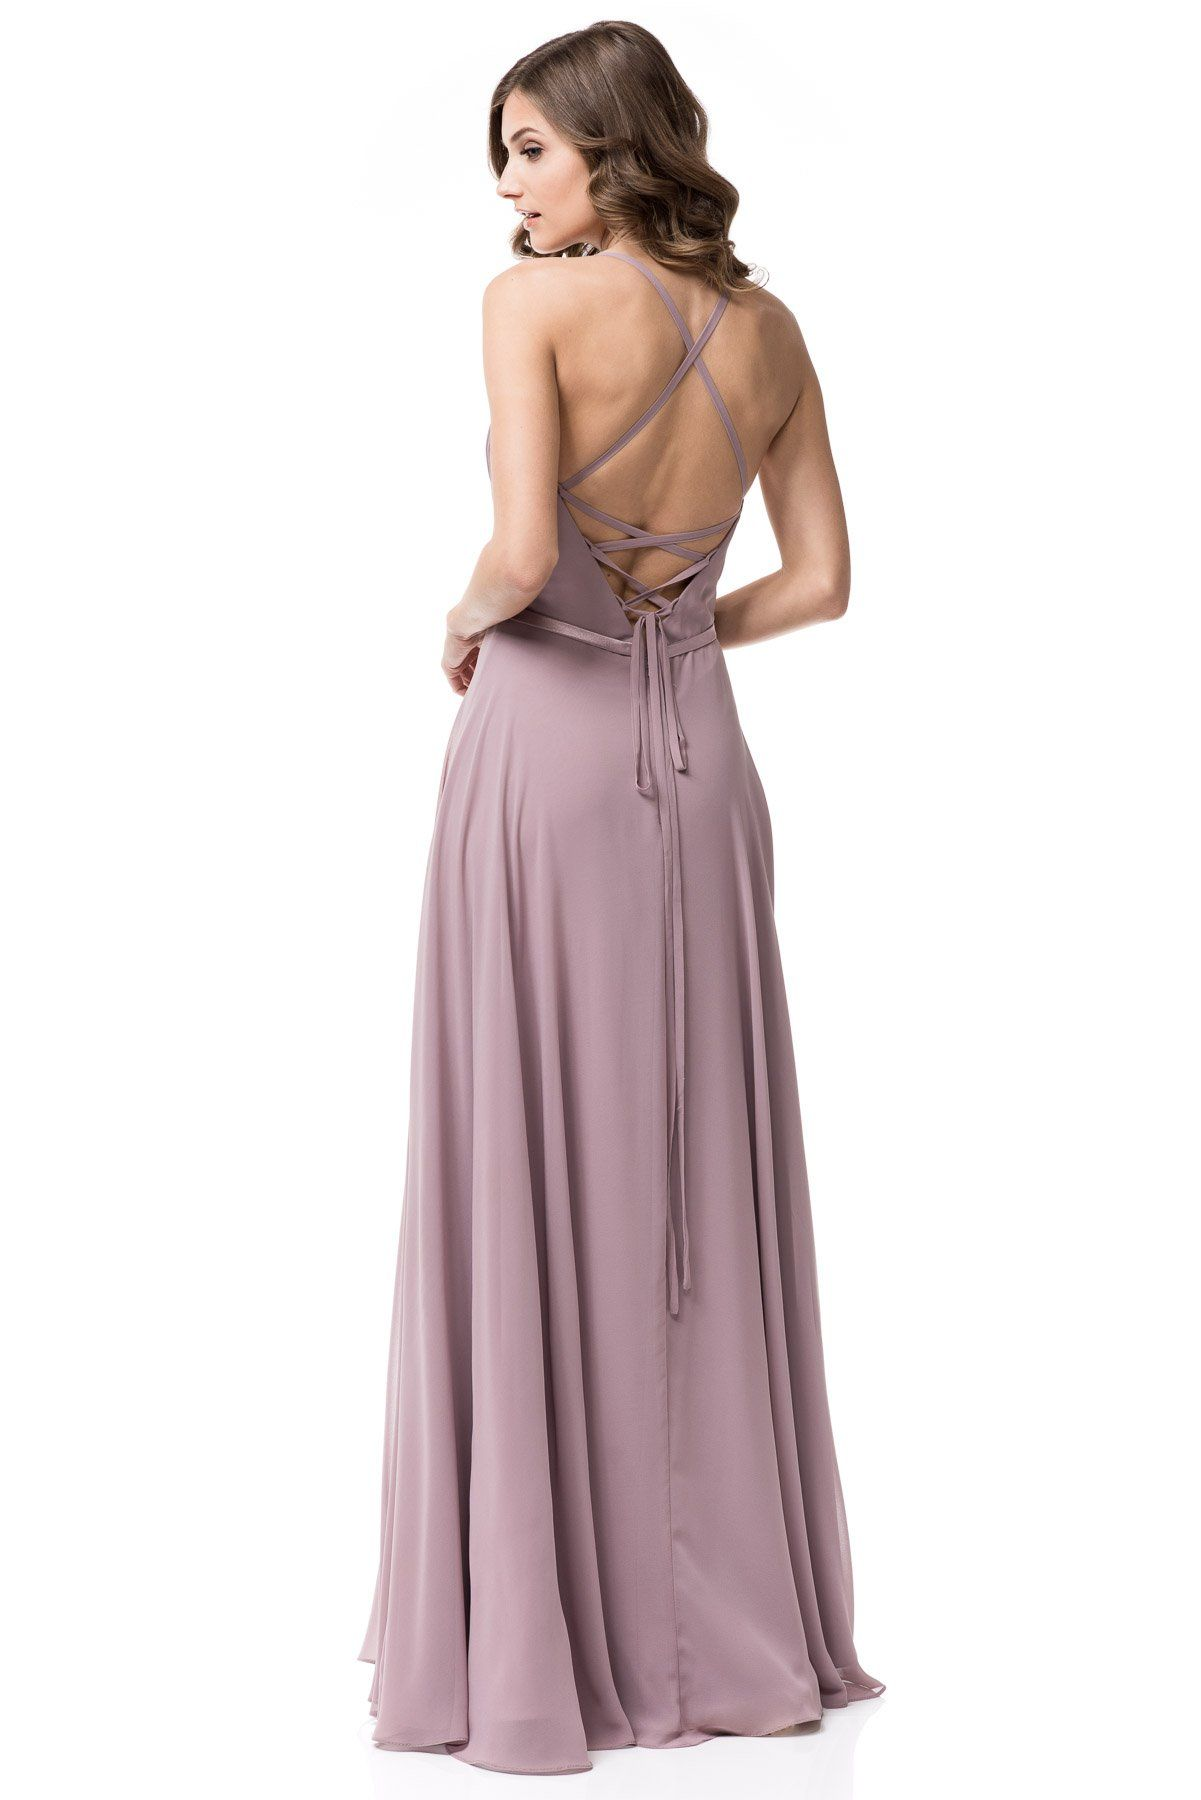 0f1df1b0153d9 Satin waist band hugs your waistline. Ruched bodice and lace back adds to  the charm. Available in Mauve and Plum ...